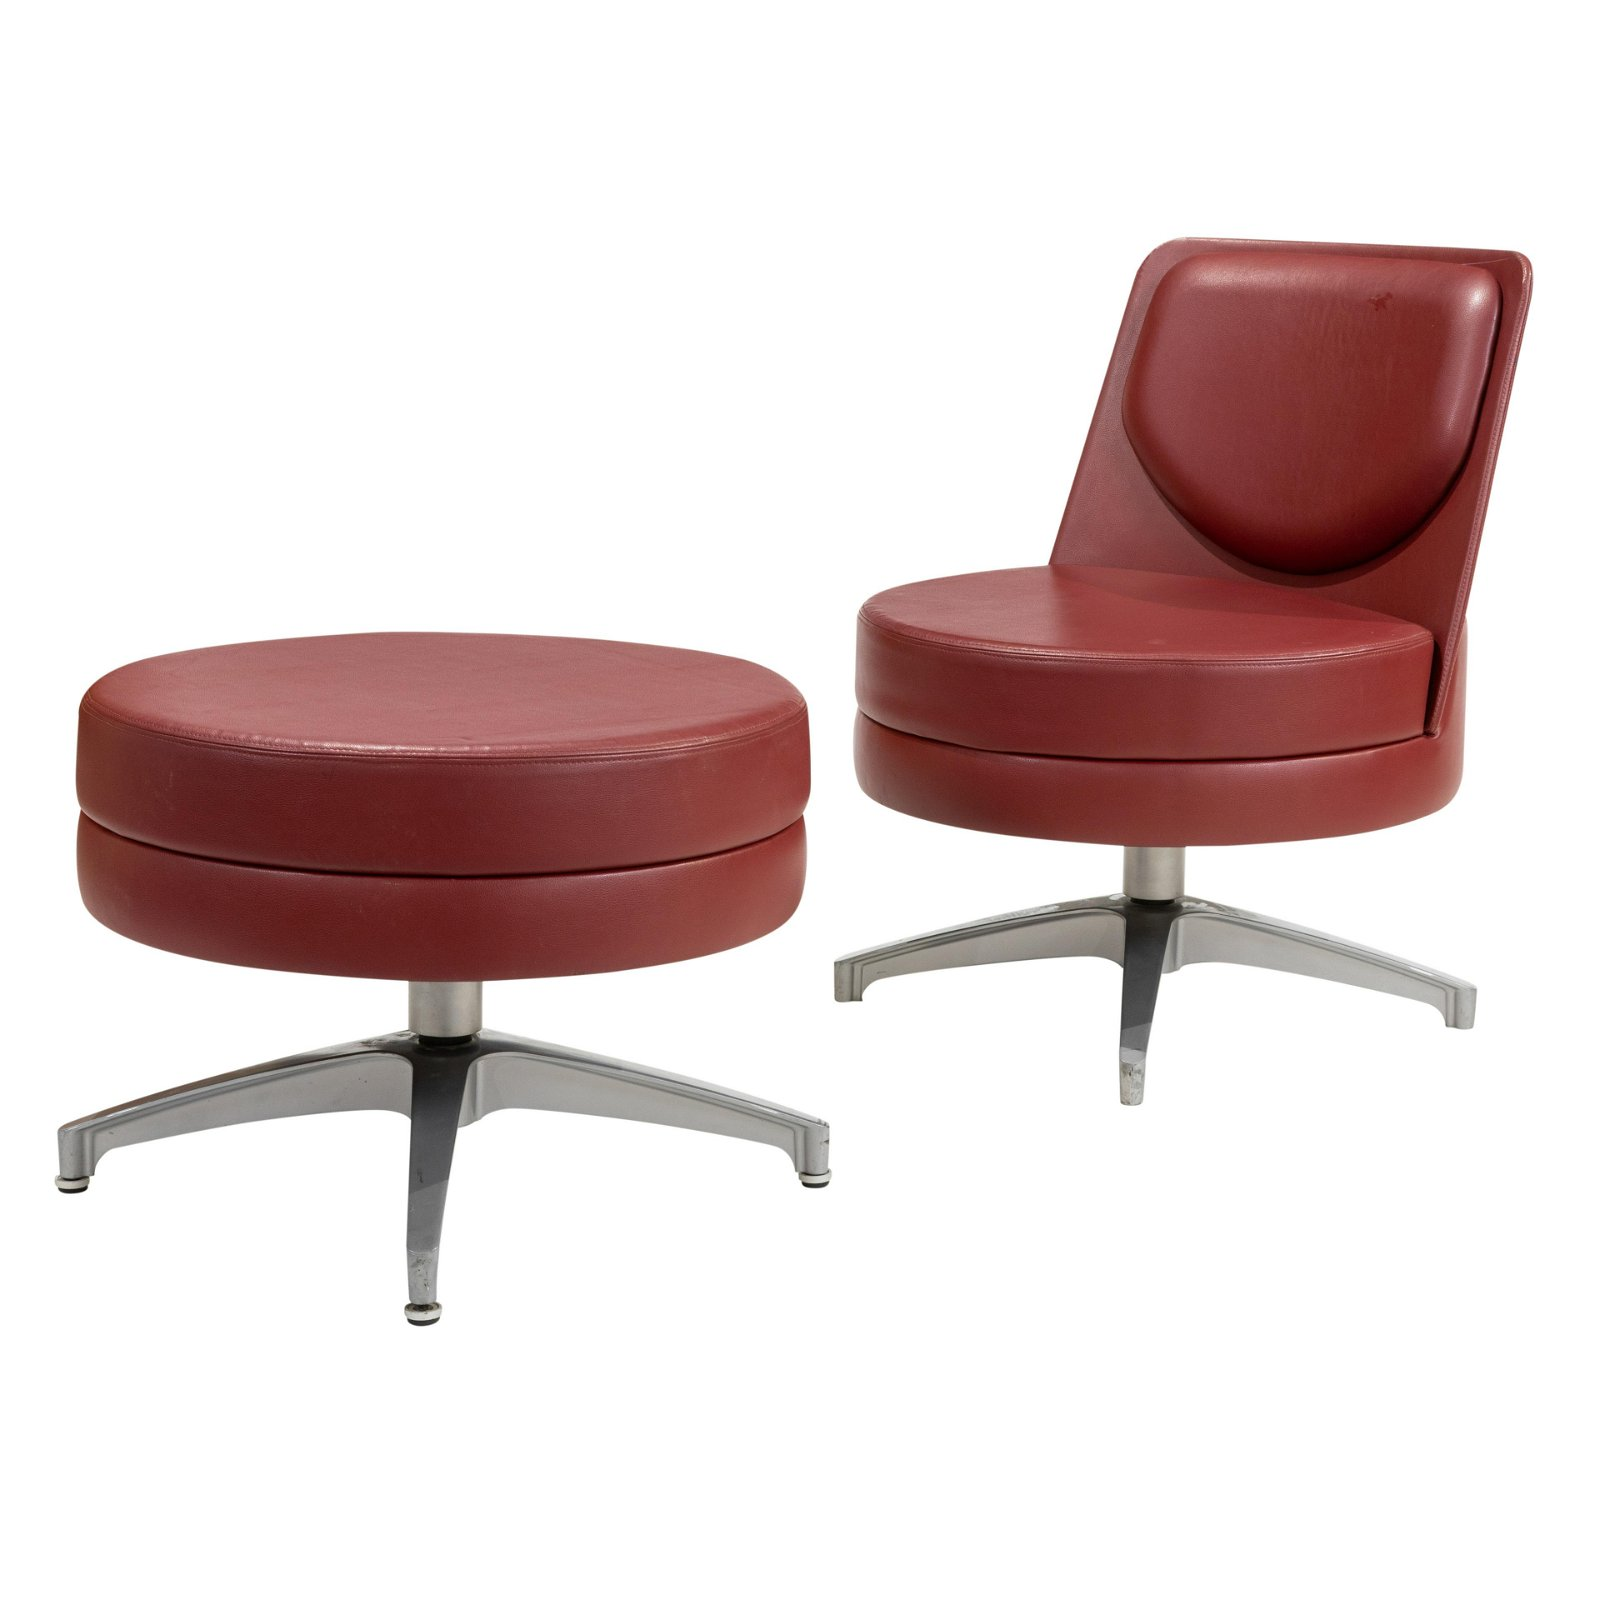 Mid Century Style Vinyl Chair and Ottoman